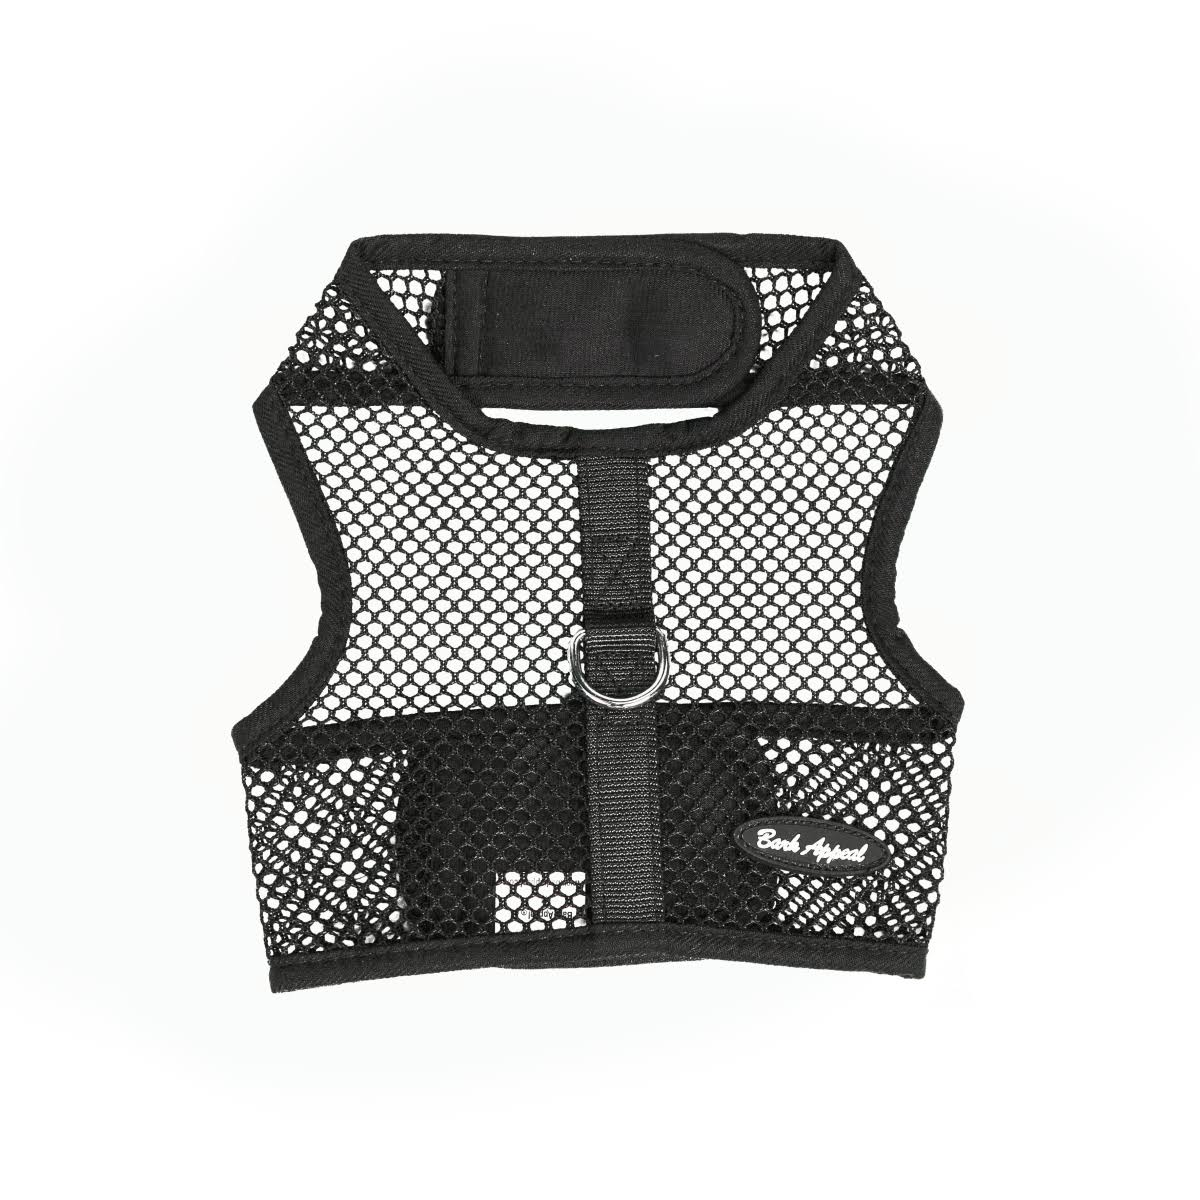 Bark Appeal Wrap N Go Netted Harness - Black, Medium